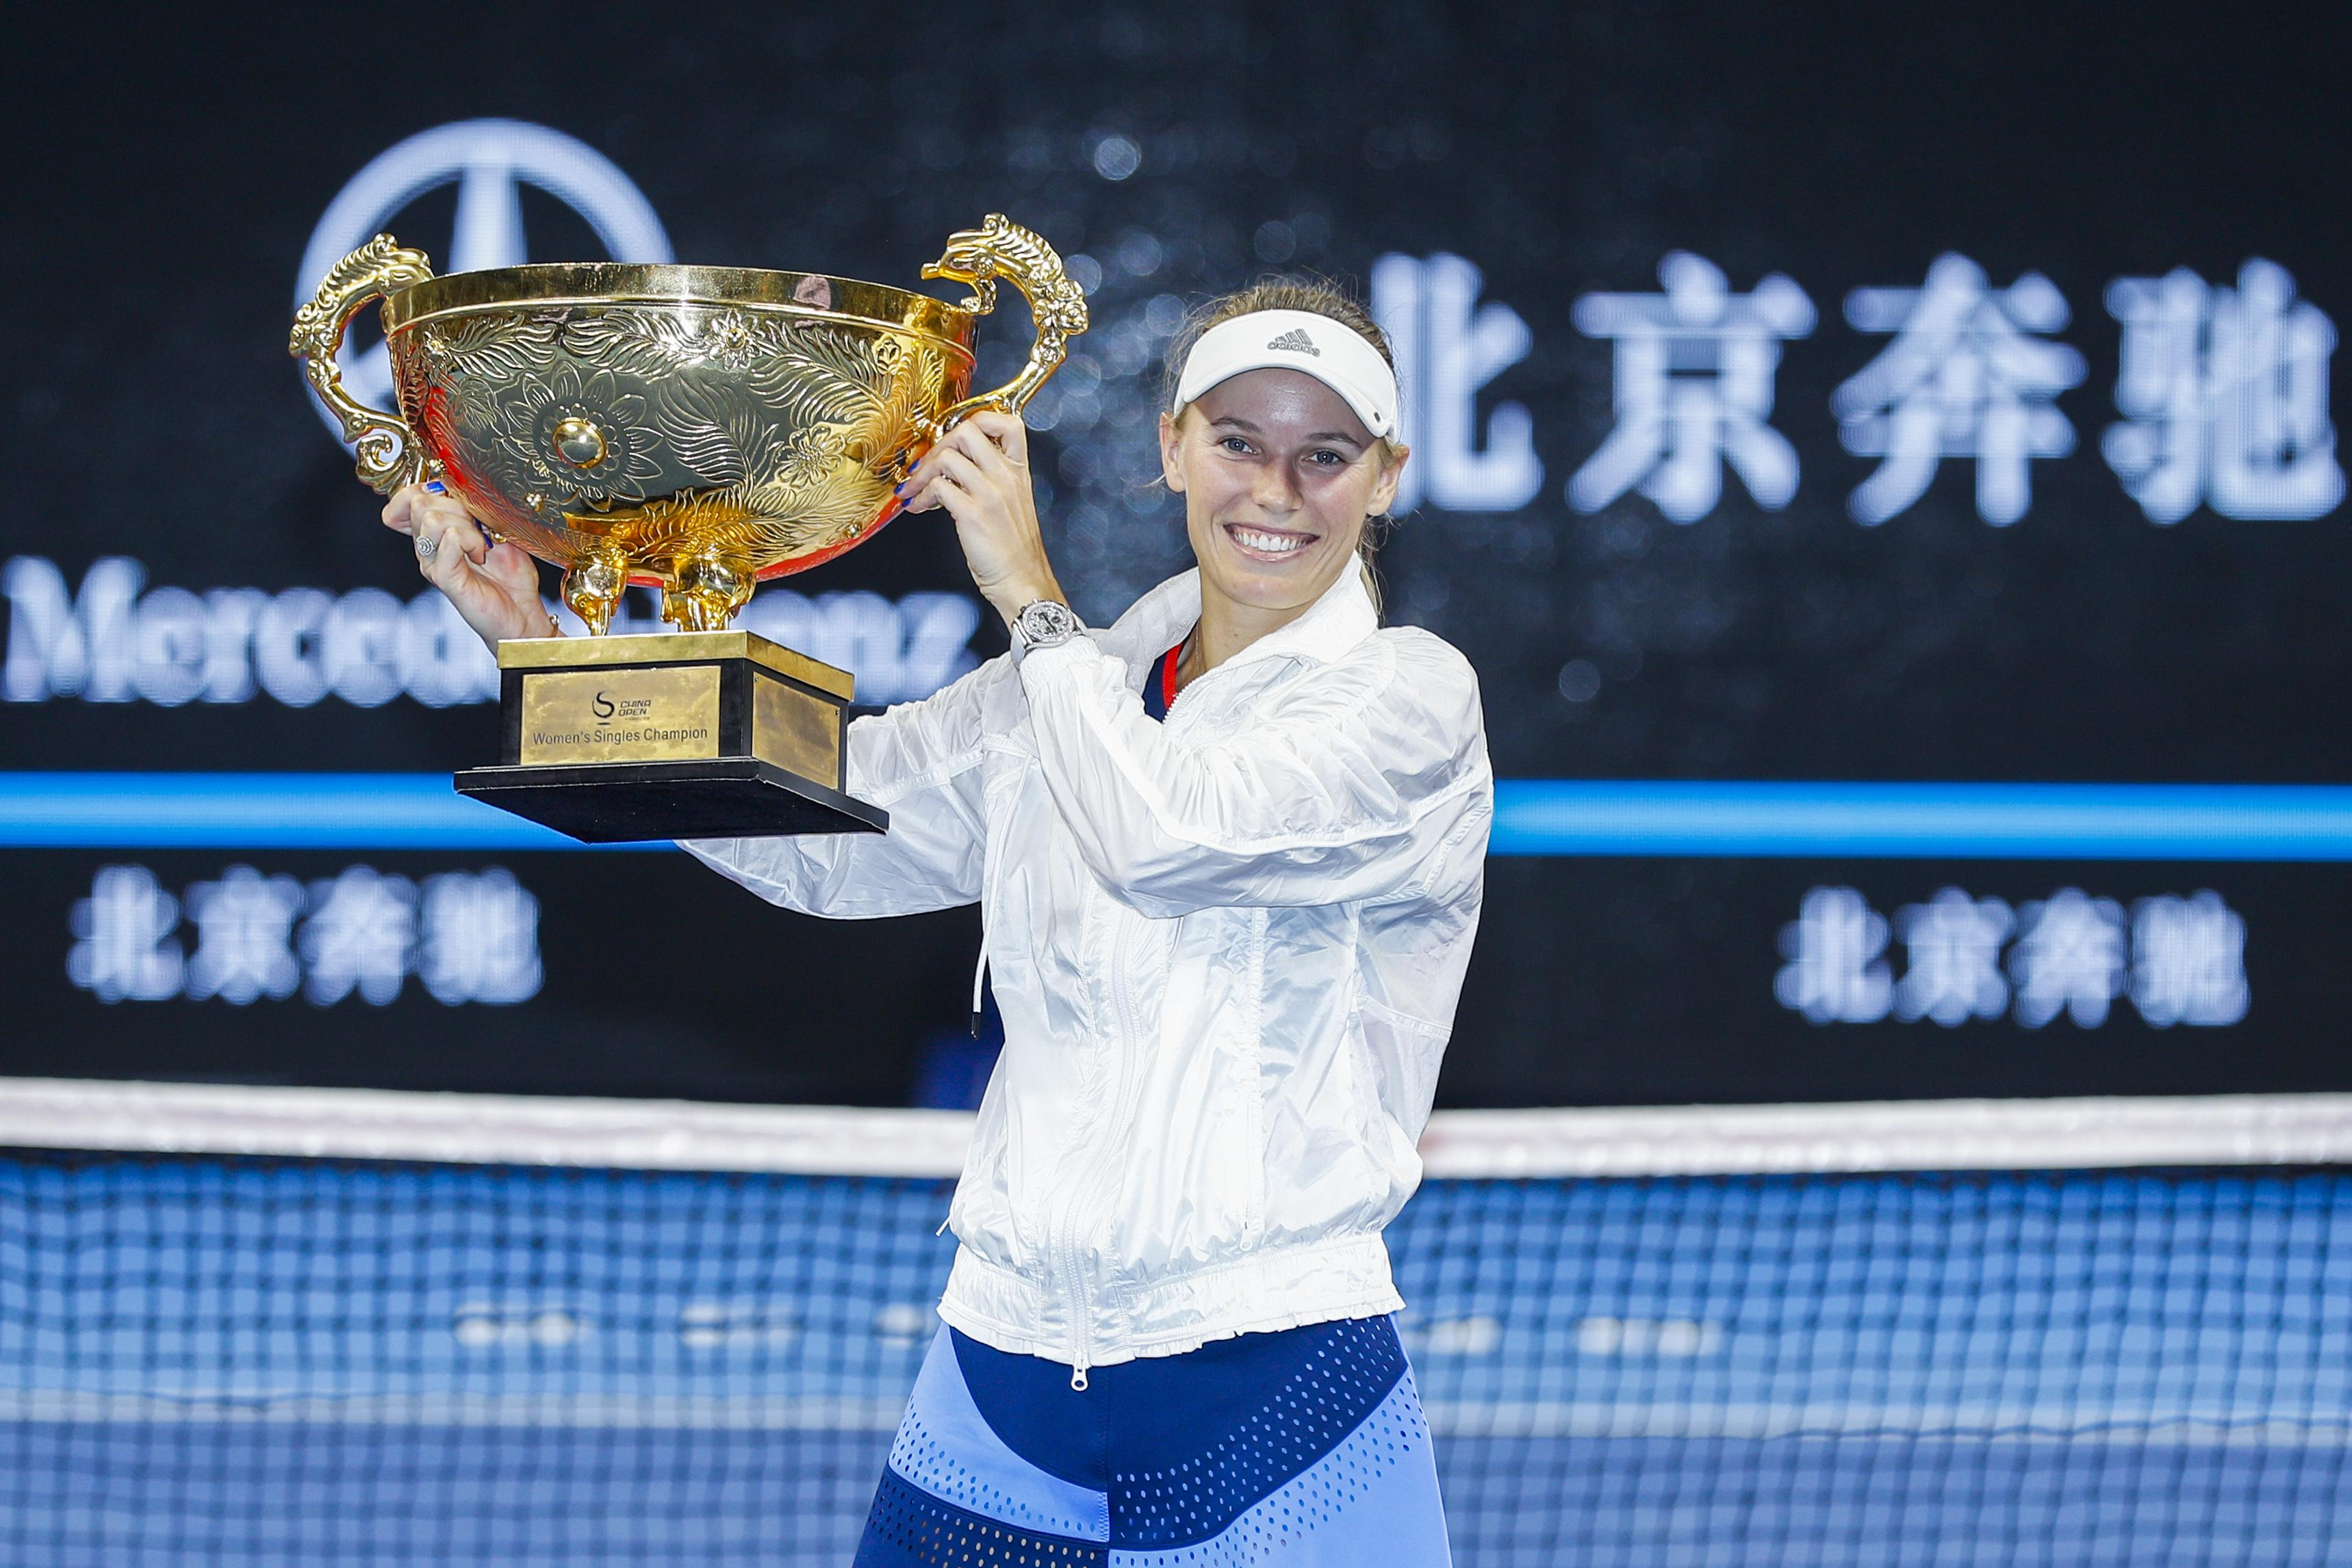 The 28-year-old won the China Open after she was informed that she was suffering with arthritis